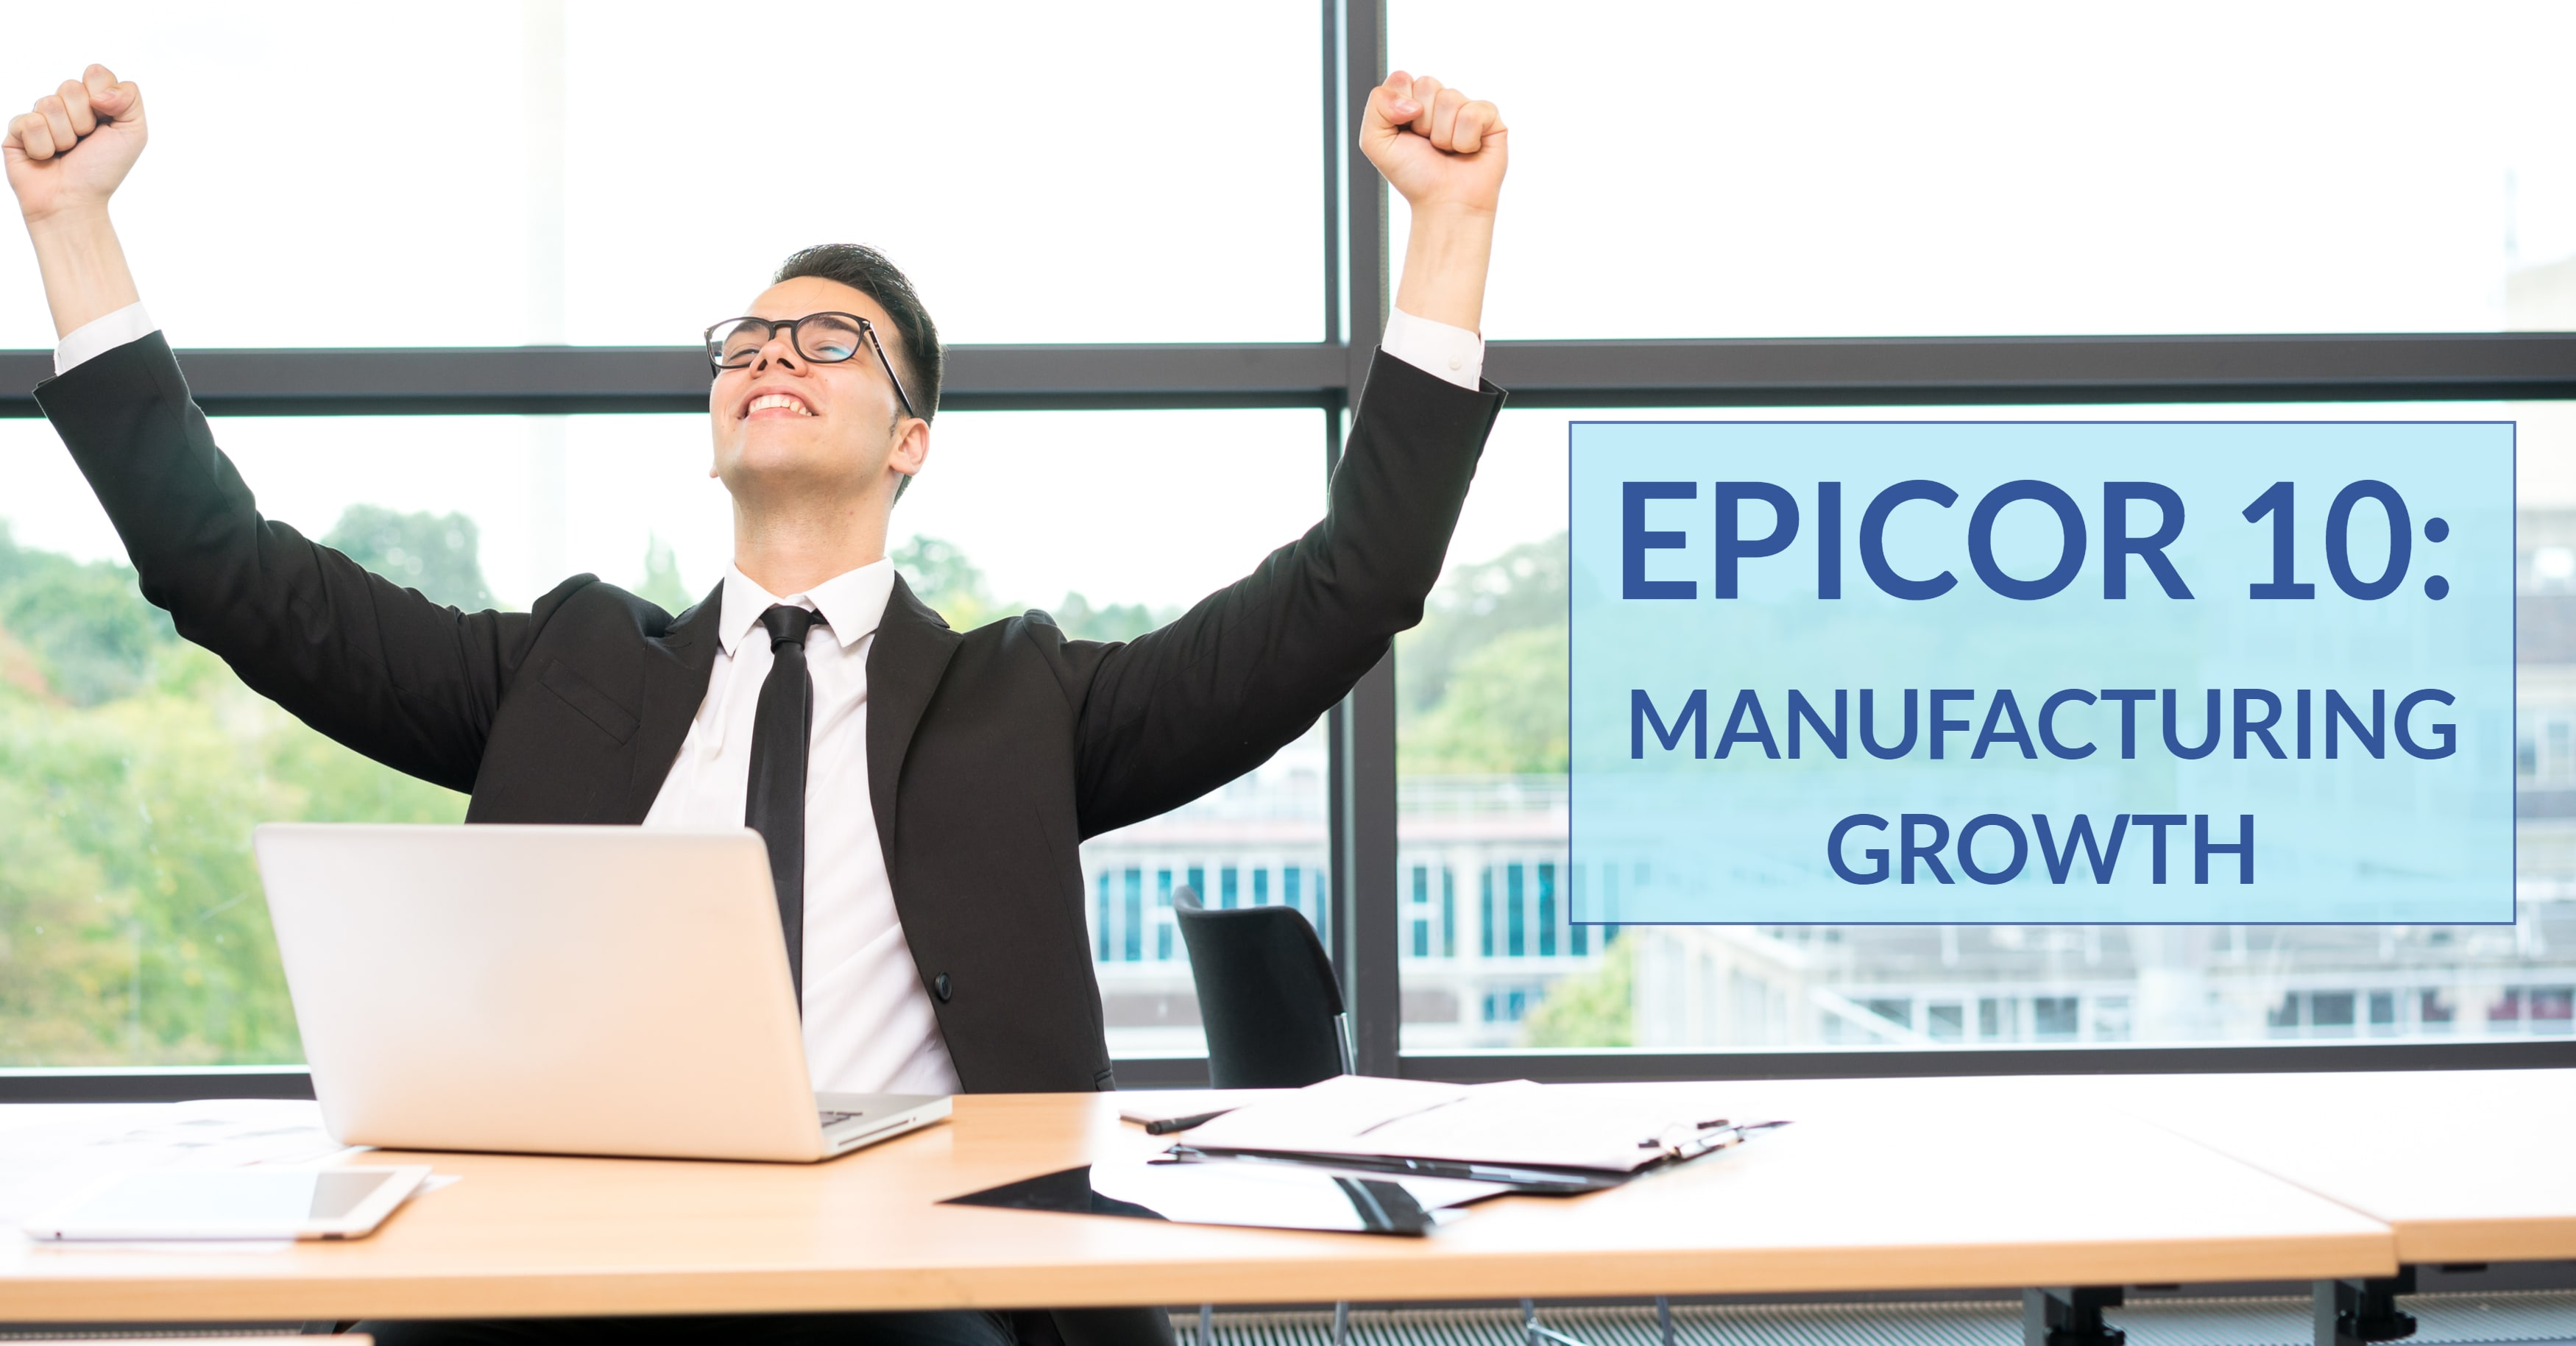 How Does Epicor 10 Fuel Manufacturing Growth?